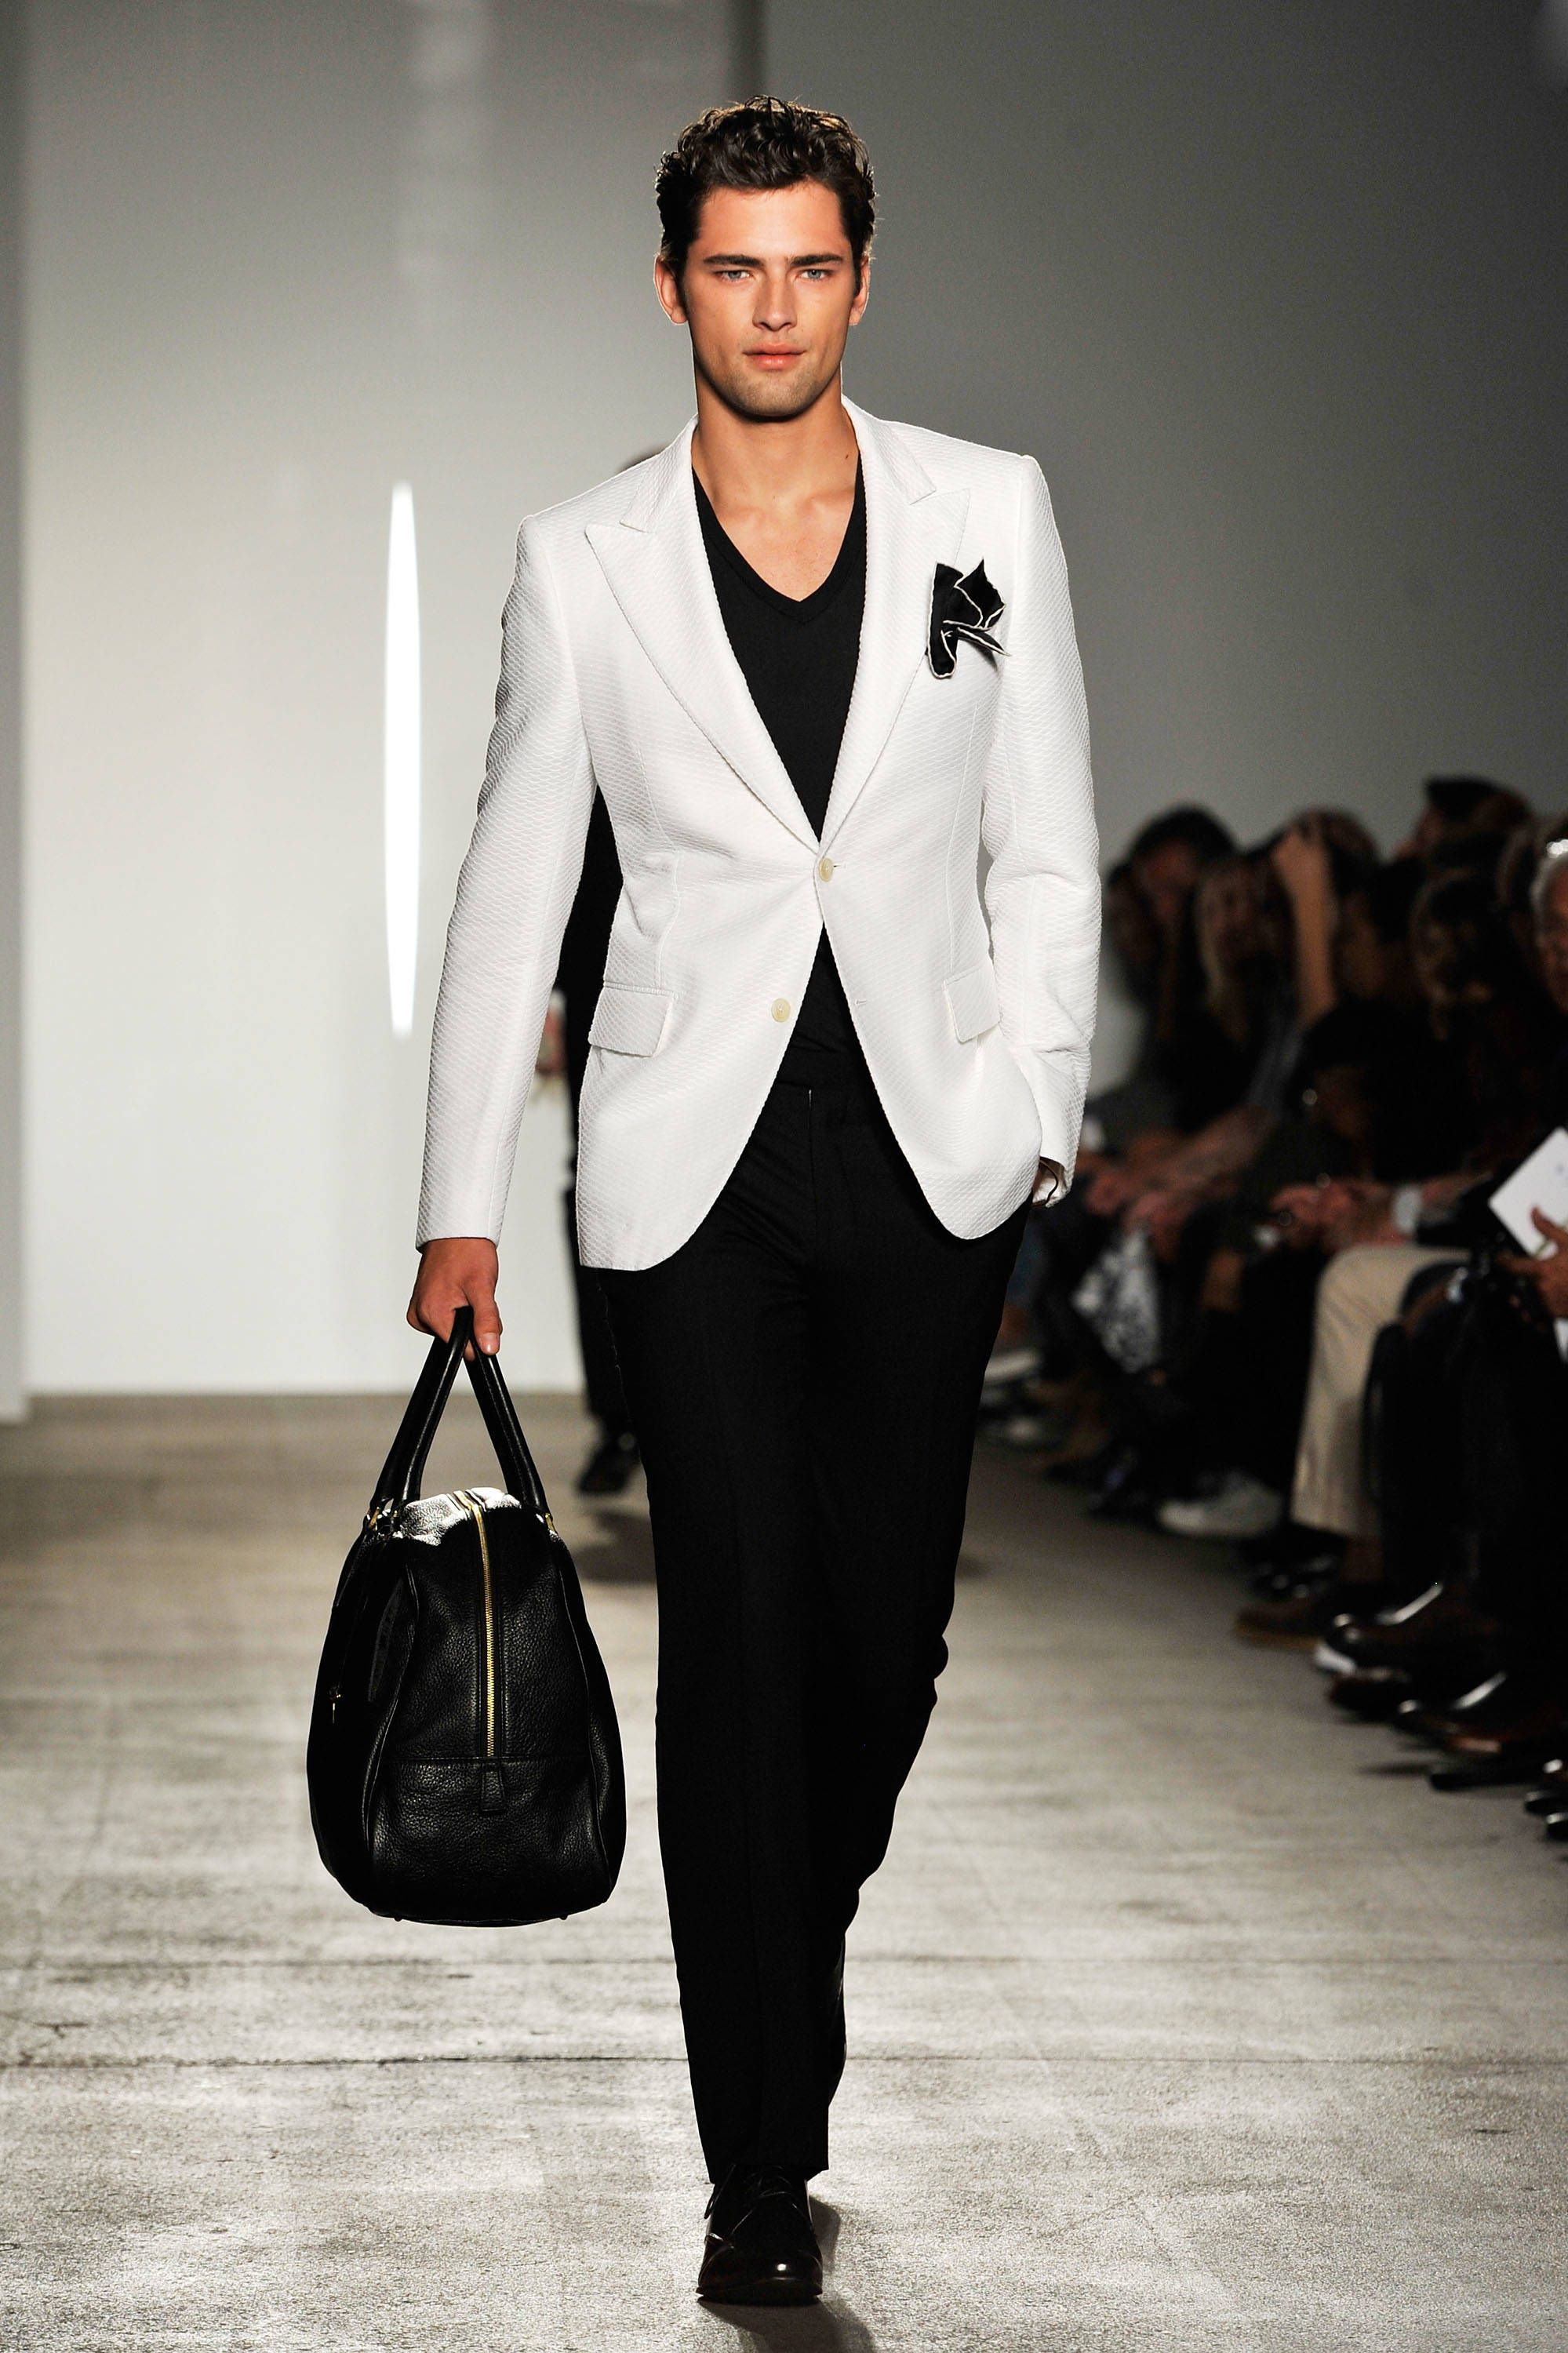 Sean O'Pry   white jacket   holdall | Sean O'Pry Gallery ...